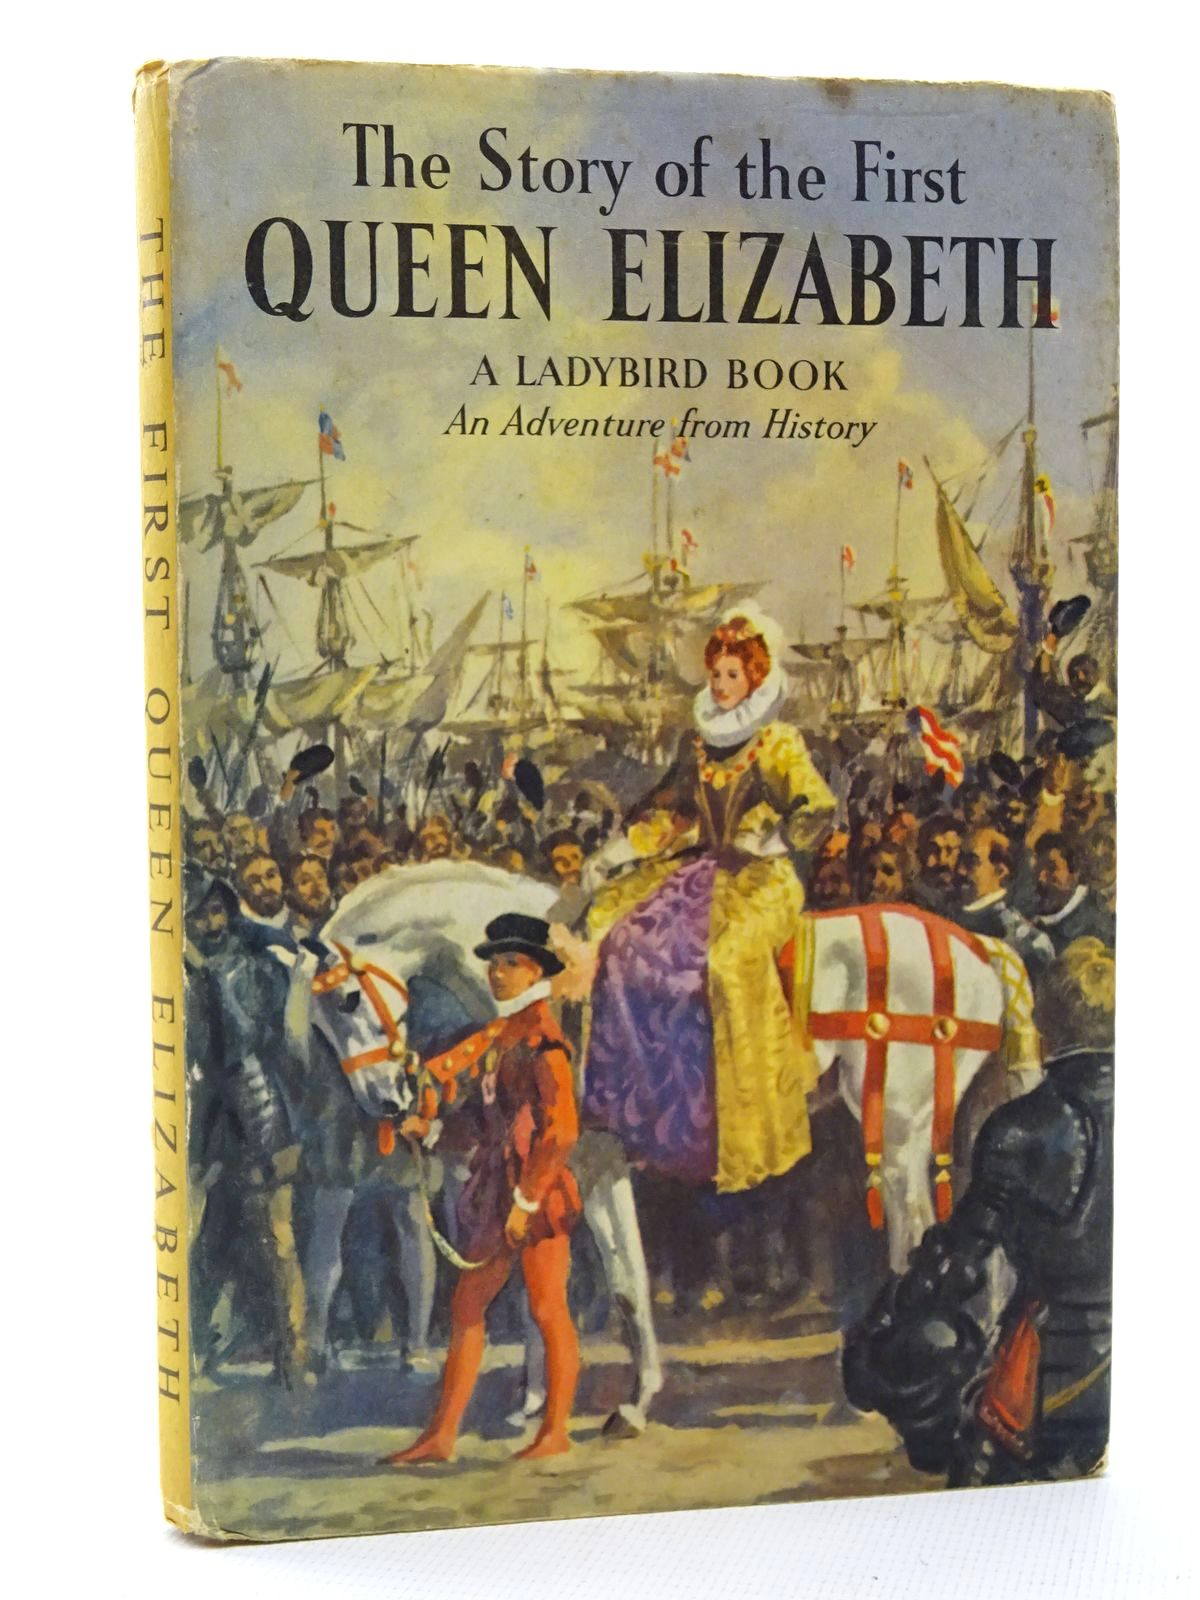 Photo of THE STORY OF THE FIRST QUEEN ELIZABETH written by Peach, L. Du Garde illustrated by Kenney, John published by Wills & Hepworth Ltd. (STOCK CODE: 2124235)  for sale by Stella & Rose's Books